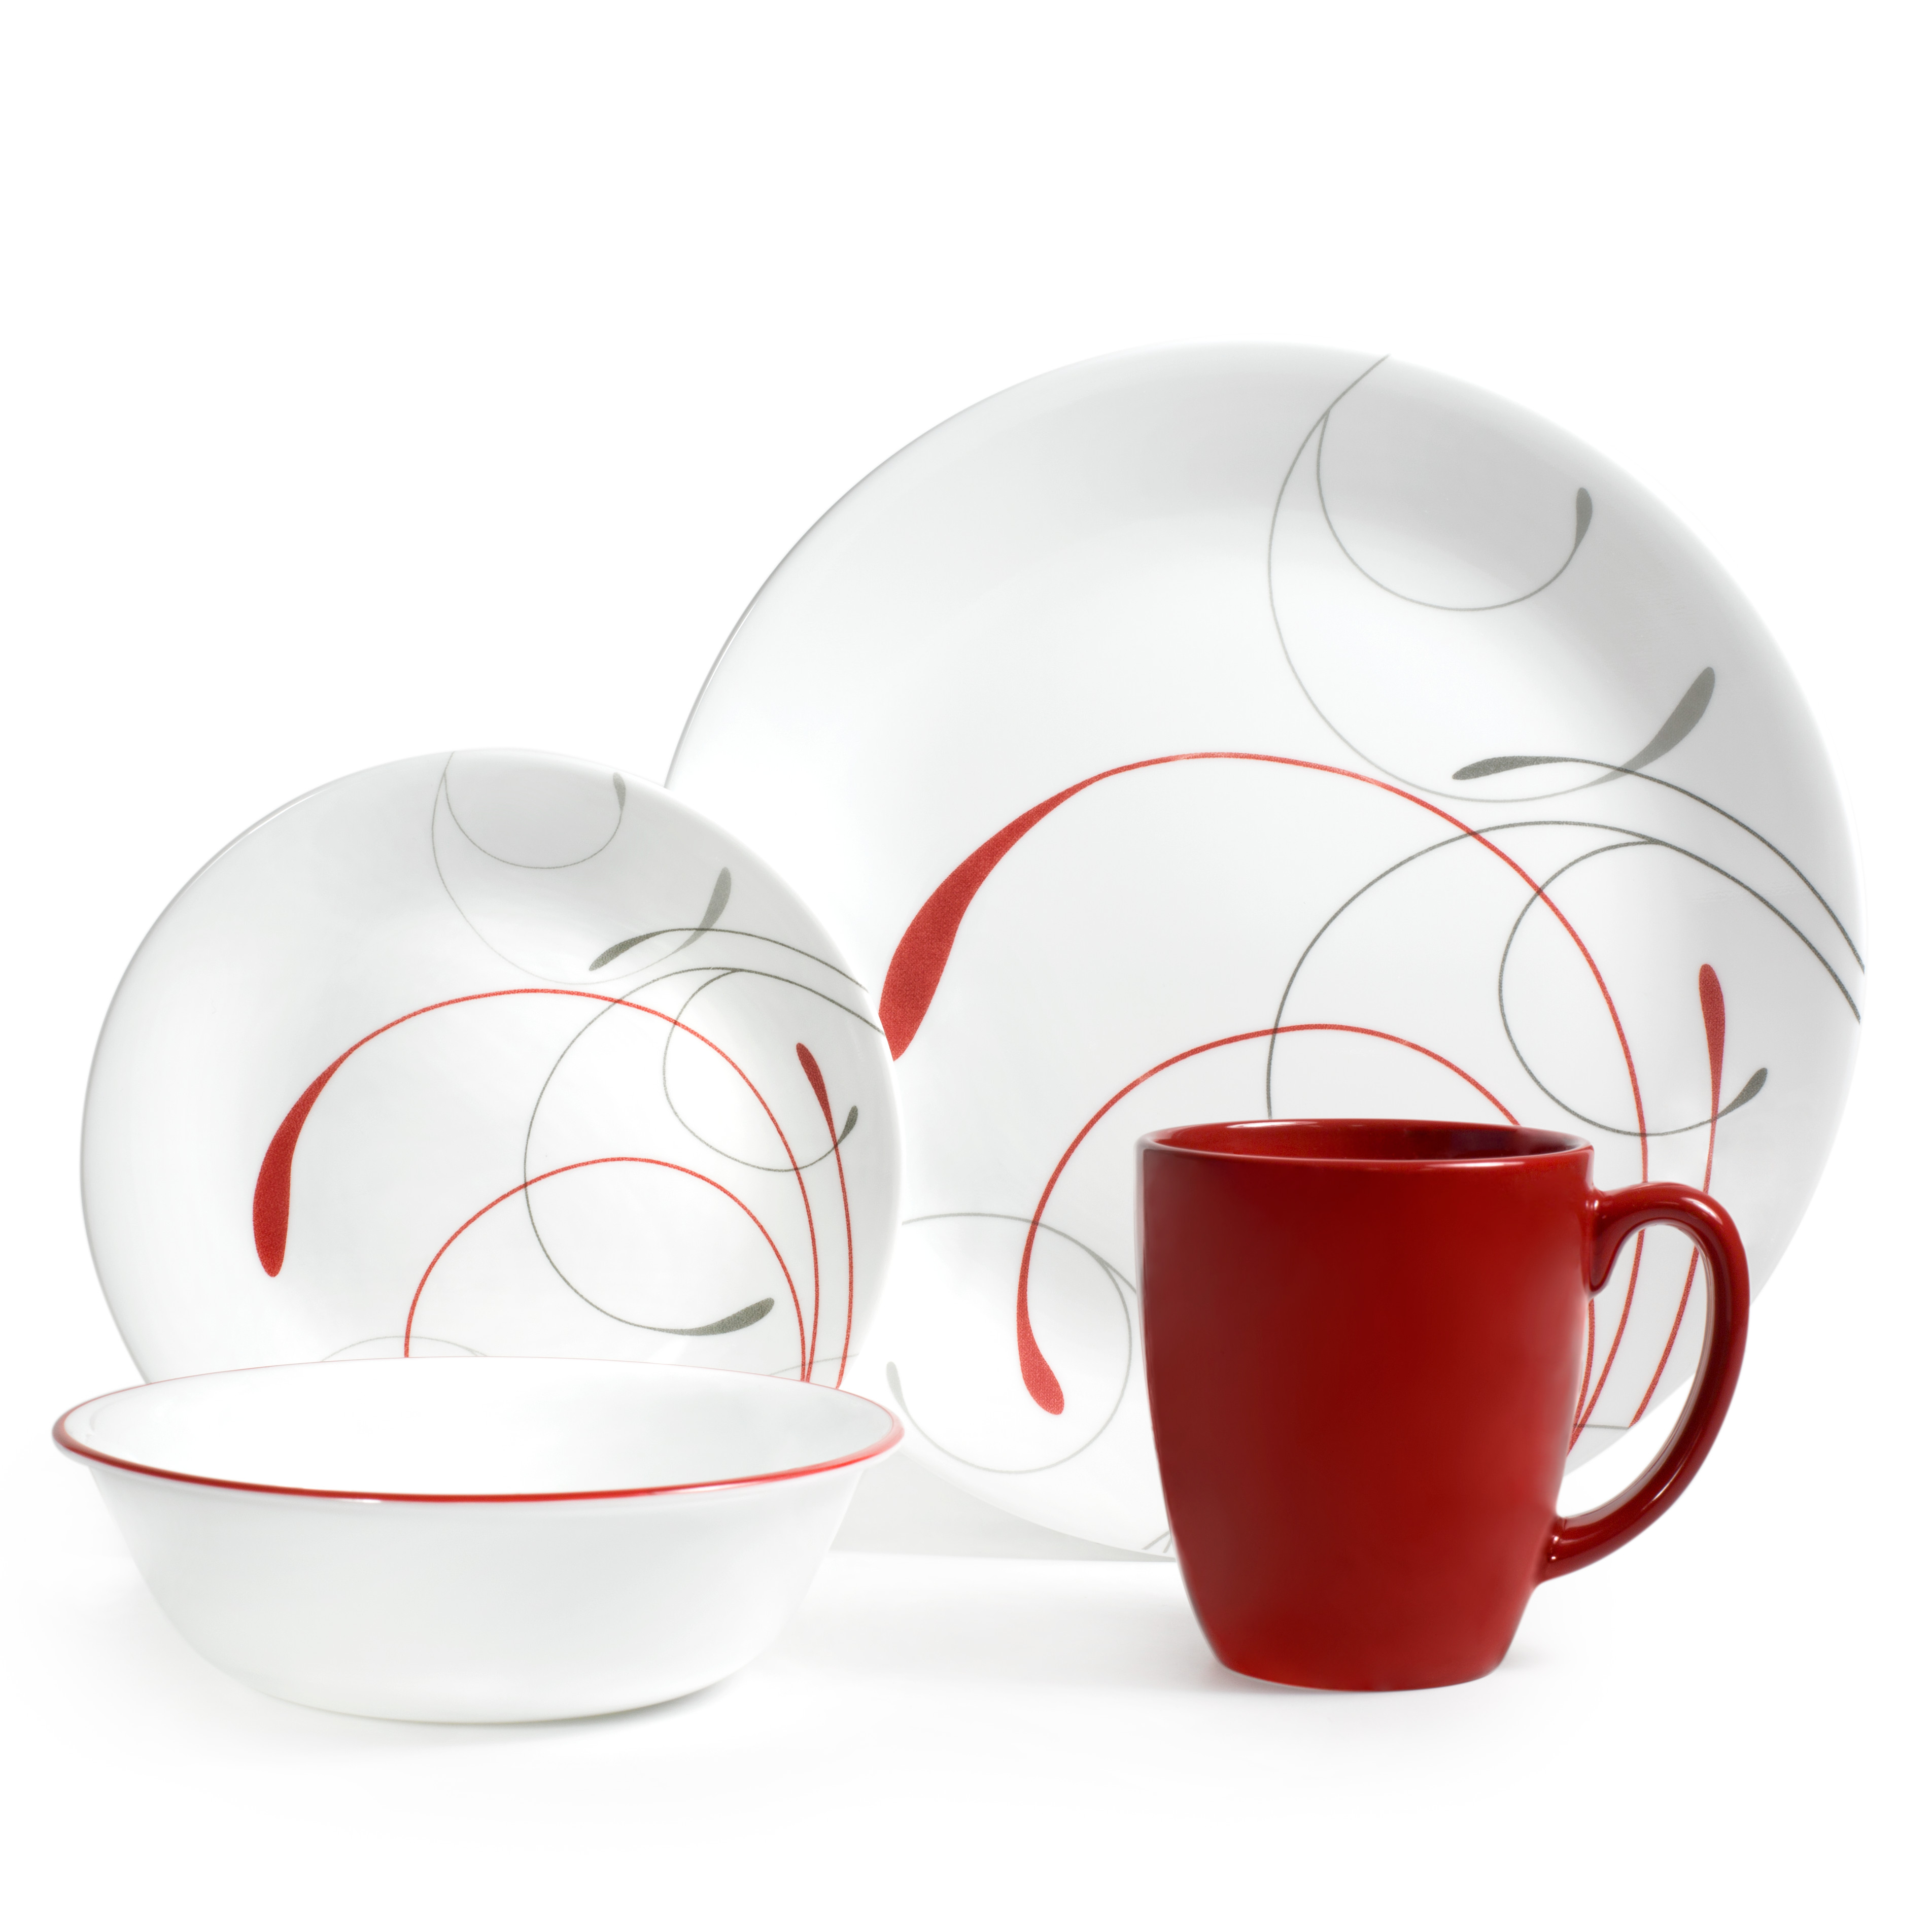 Corelle Livingware Splendor Coupe 16-piece Dinnerware Set